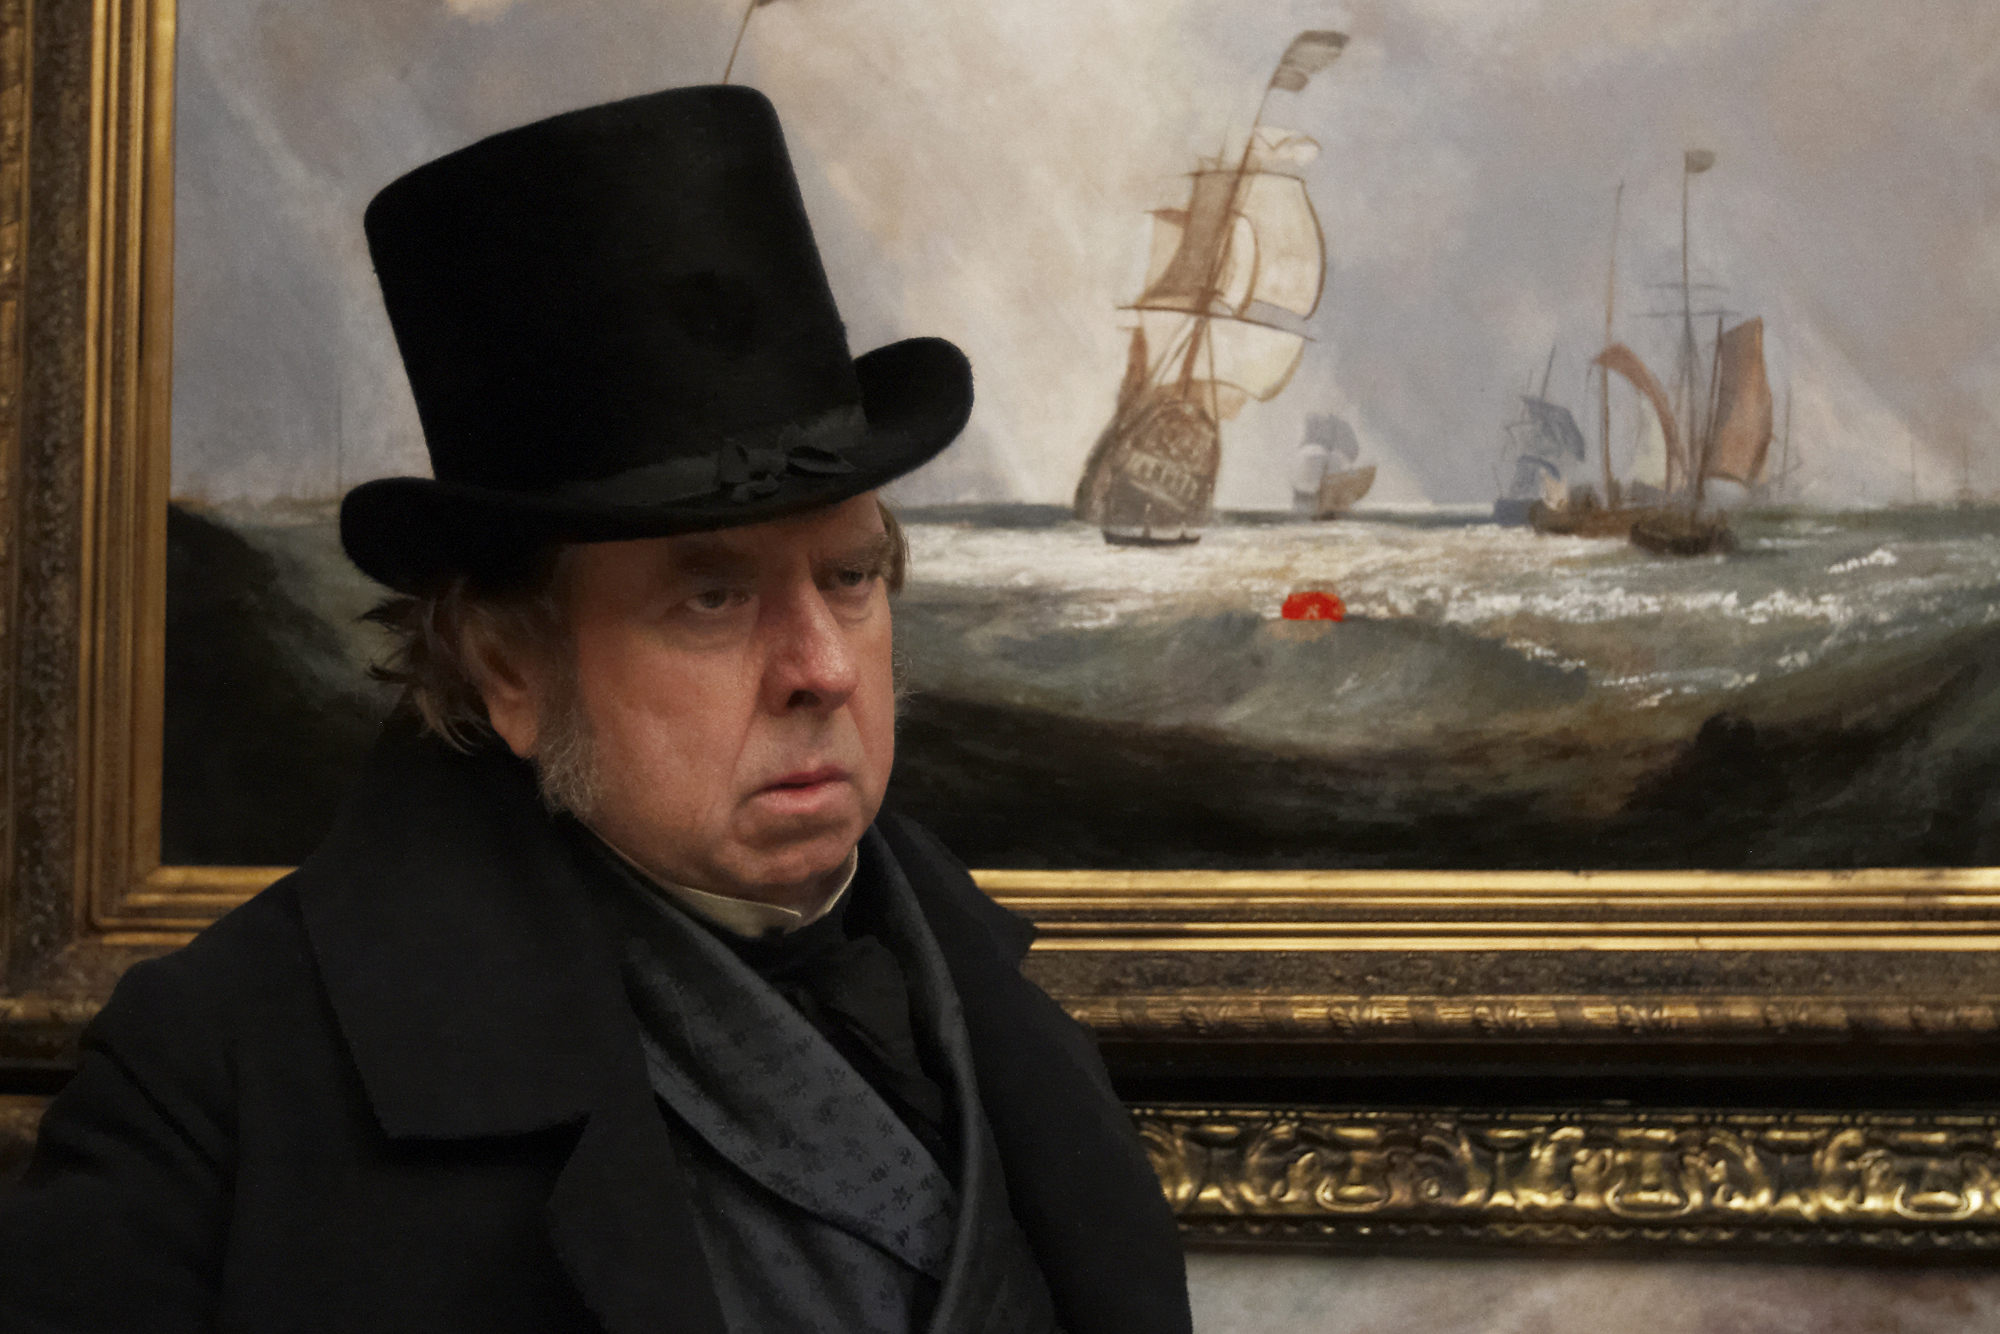 Mr. Turner HD wallpapers, Desktop wallpaper - most viewed